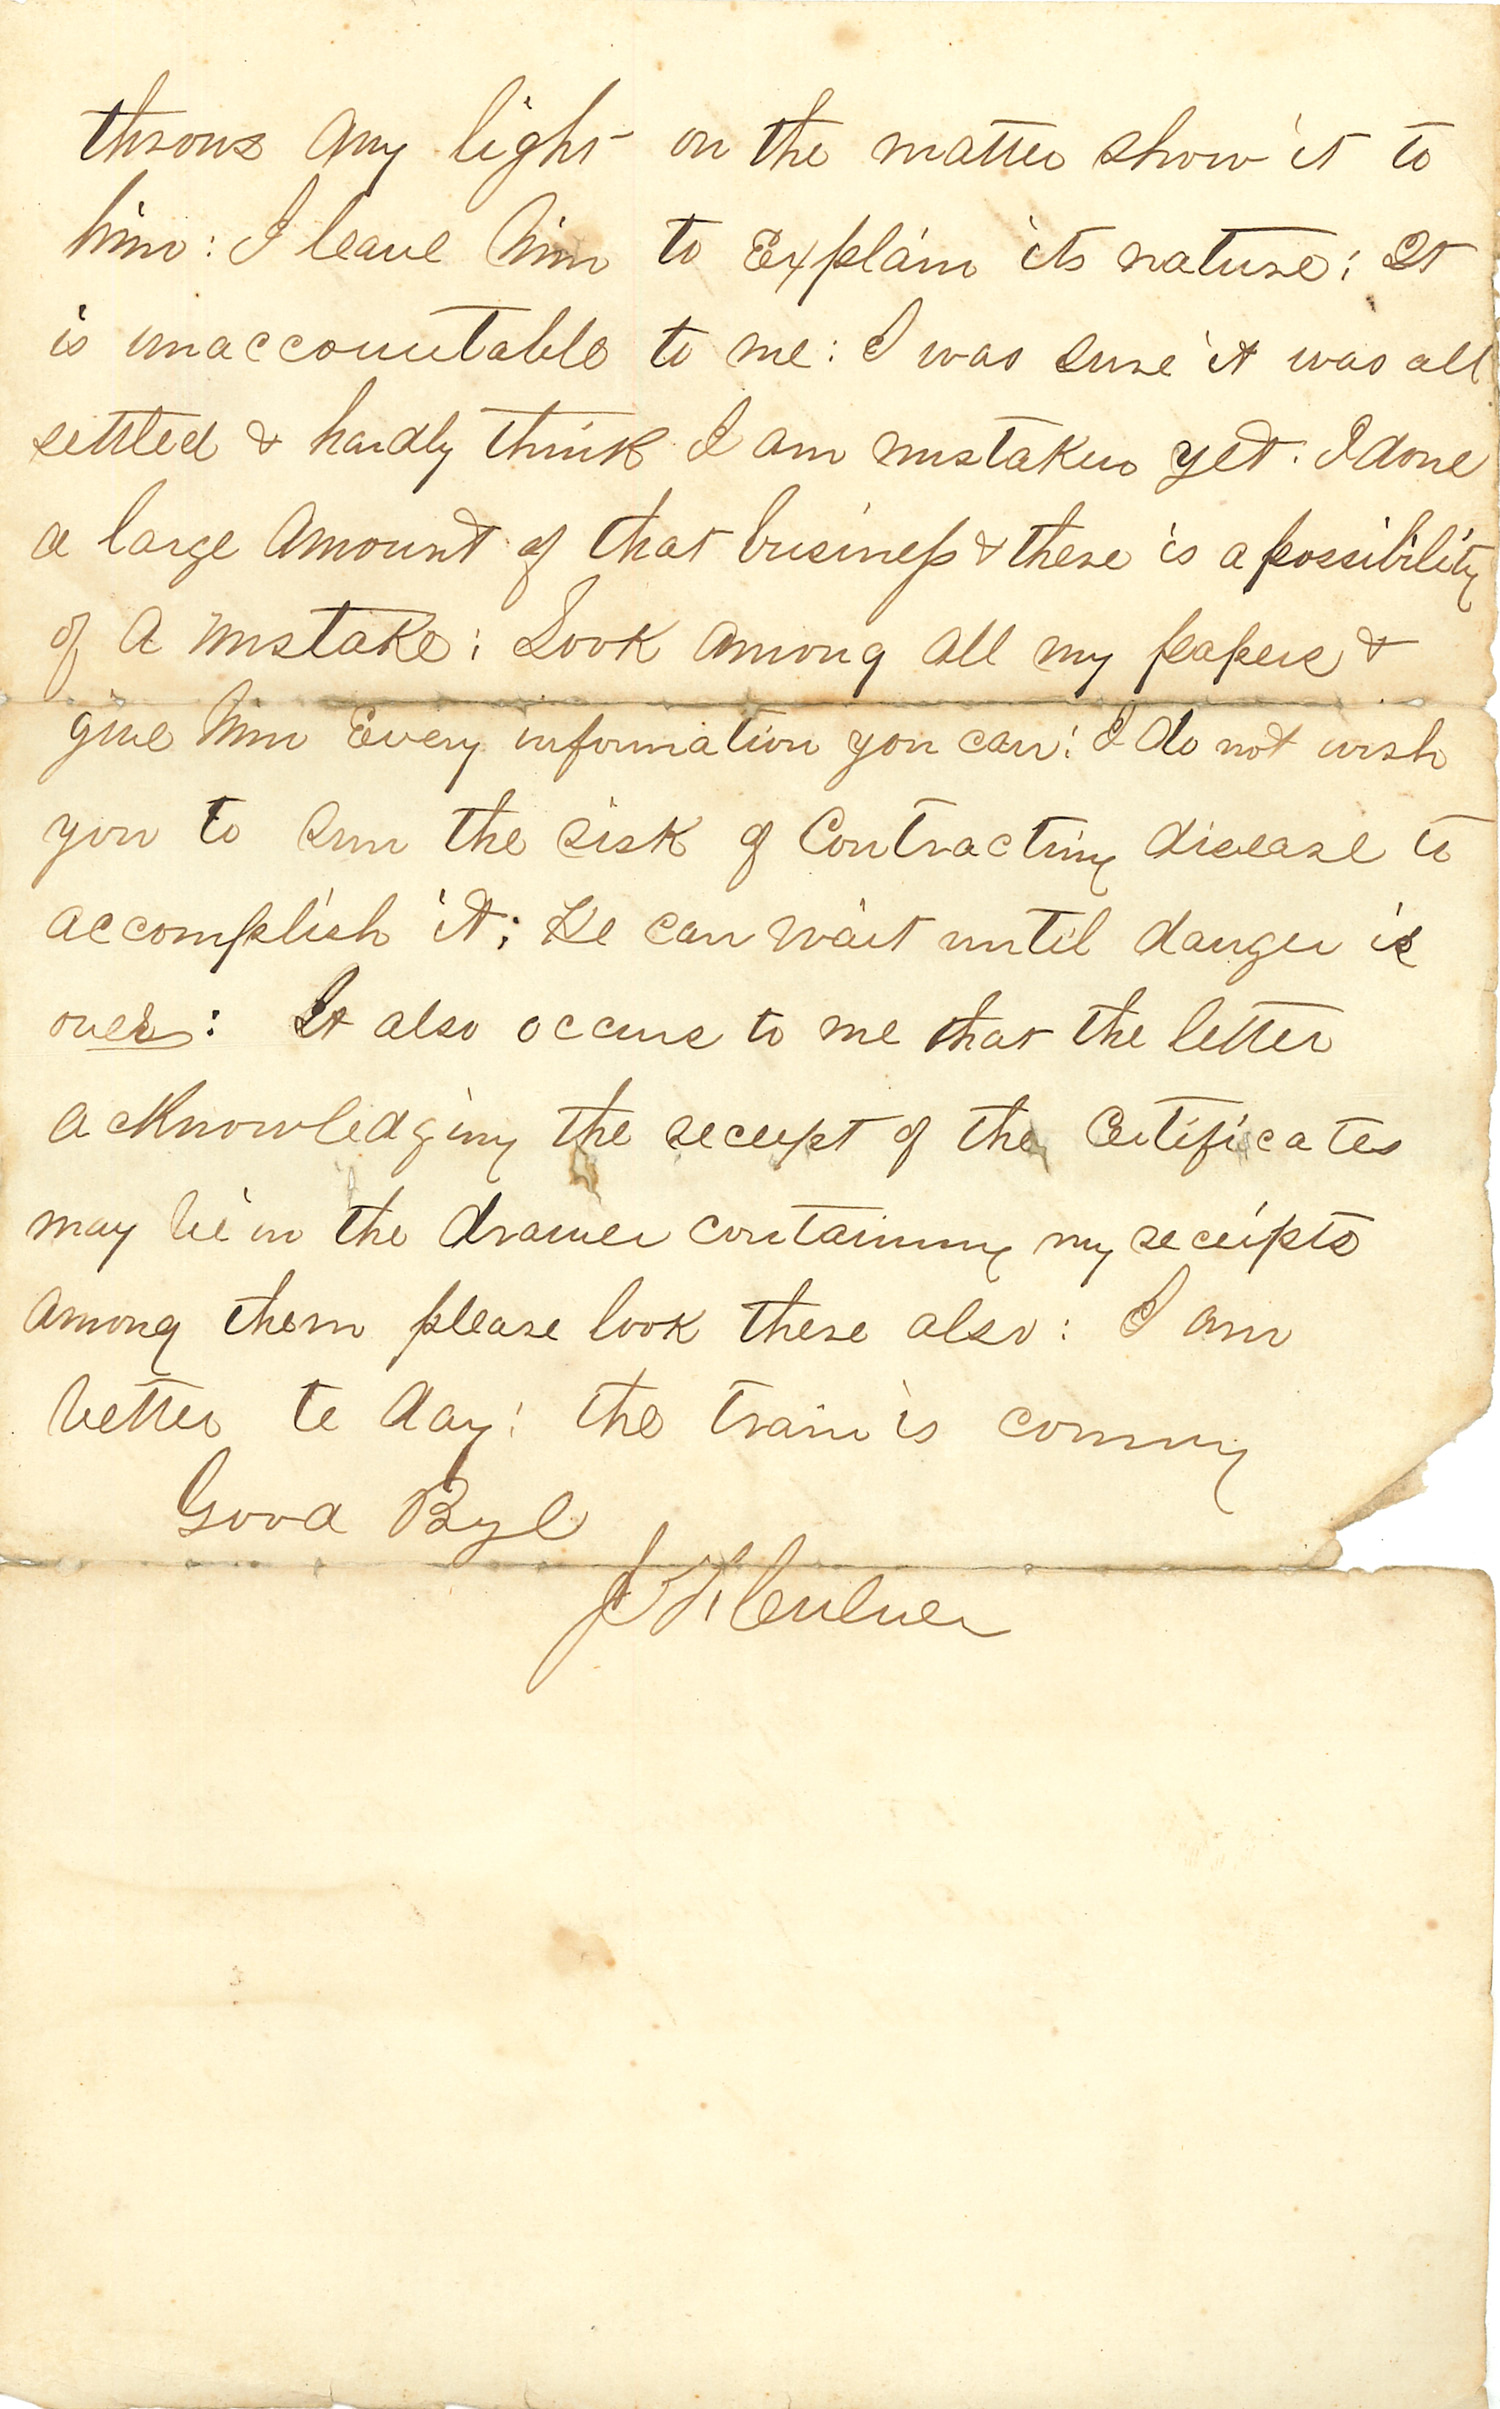 Joseph Culver Letter, January 19, 1863, Letter 2, Page 3